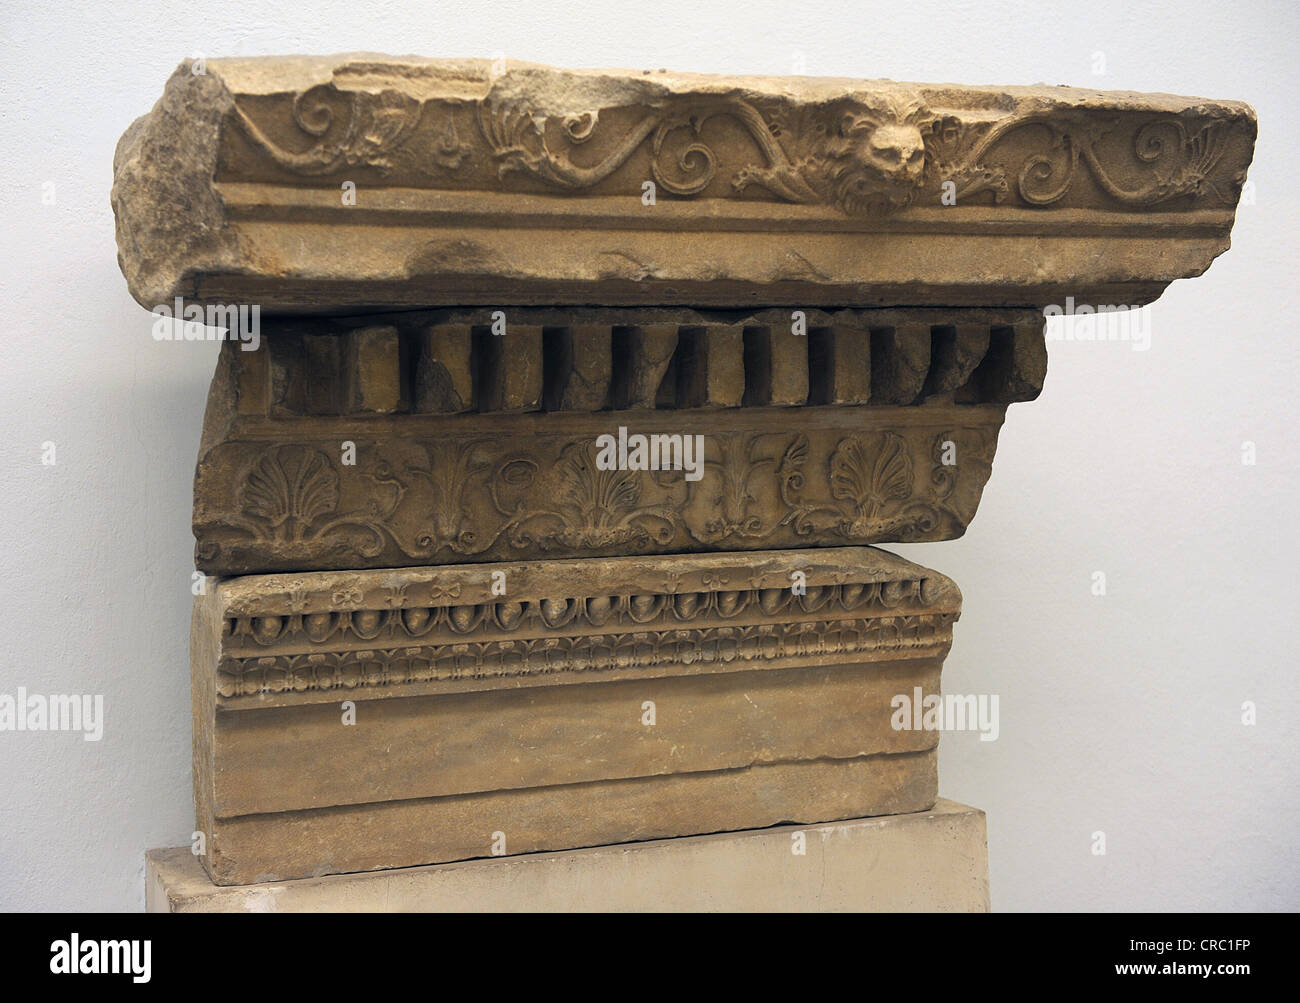 Fragment of an entablature of the sacrificial altar. Marble. 156 BC. Courtyard of the great altar of Pergamum. - Stock Image